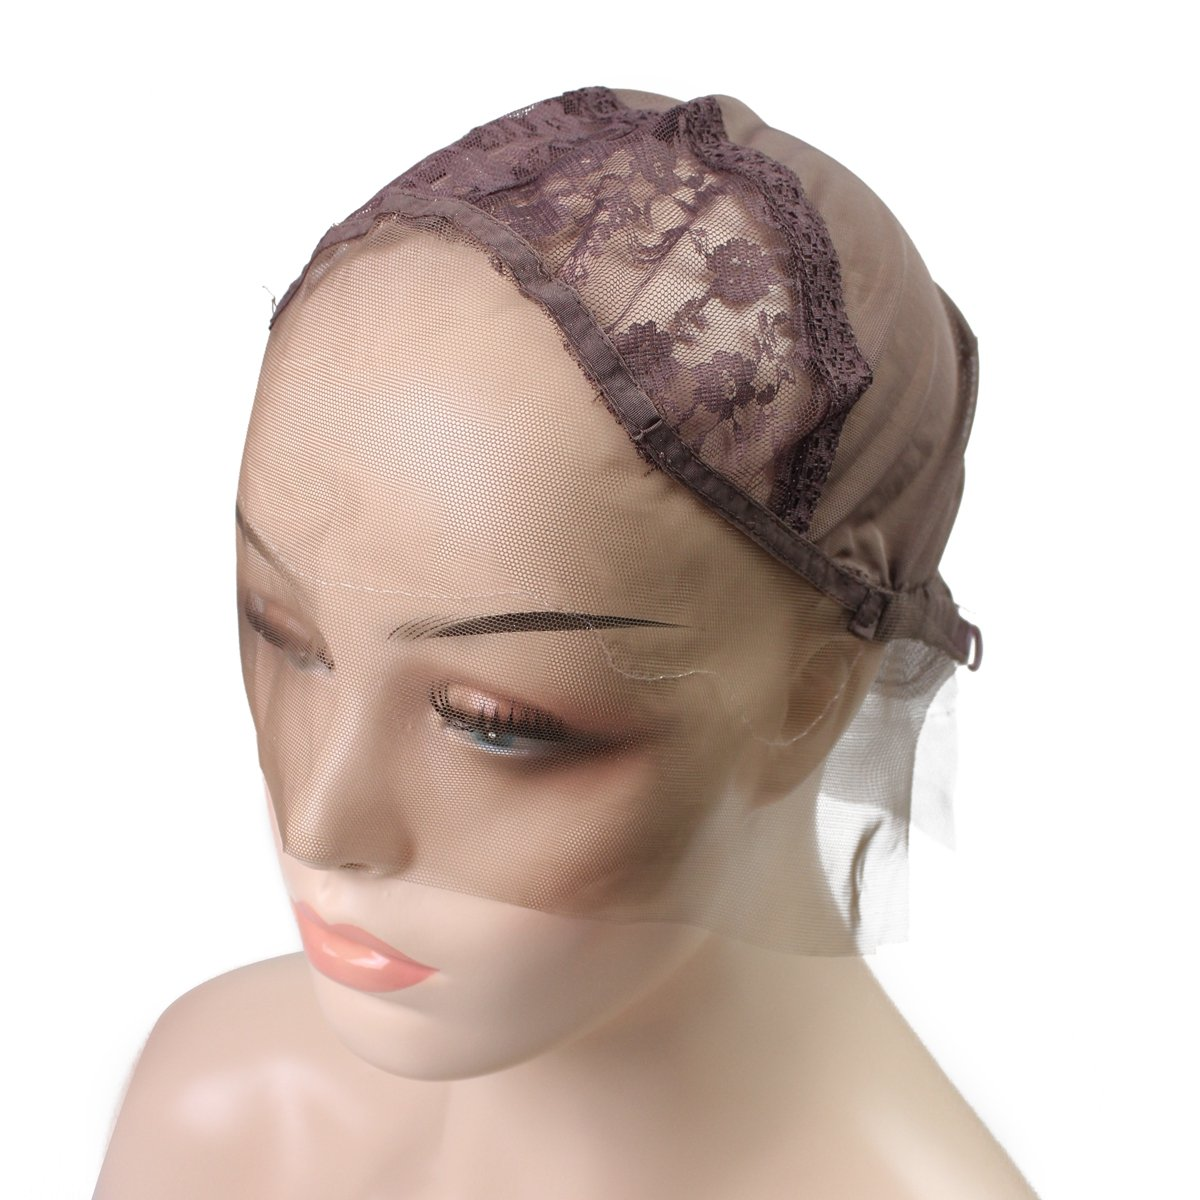 Lace Wig Cap with Free Wig Combs Swiss Breathable Lace Front Wig Caps for Making Wigs with Adjustable Straps Small Size Skin Color Dark Brown Xuchang Yierya Shangmao Co. Ltd